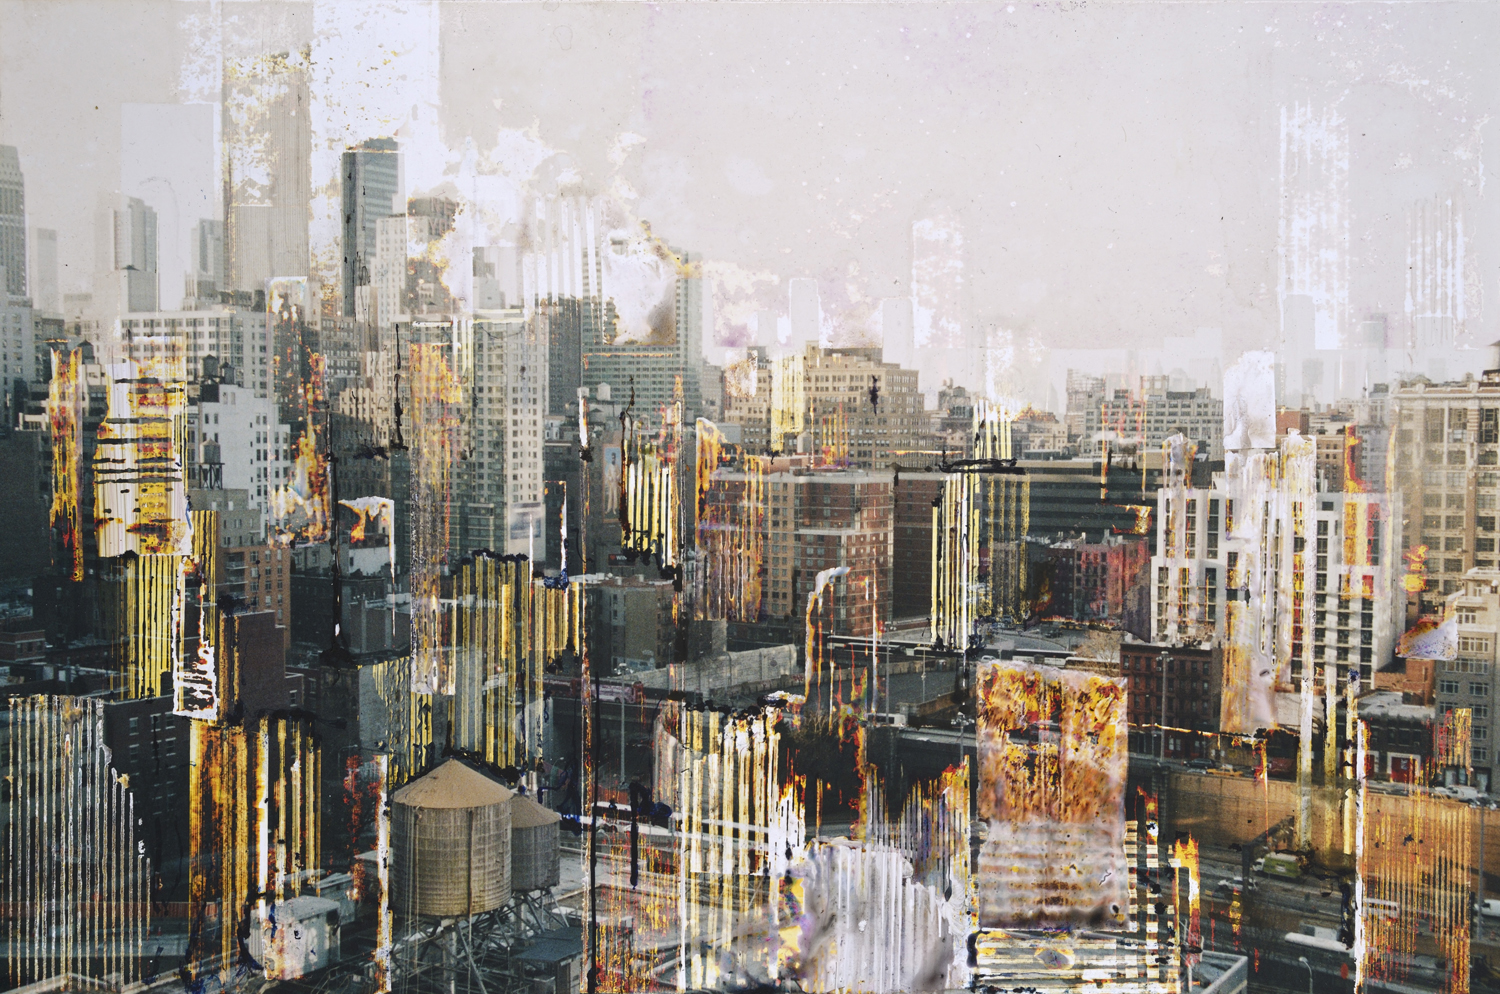 GOTTFRIED SALZMANN, Manhattan to south, mixed media on photograph on wood, 19.5 x 29 in, 2017